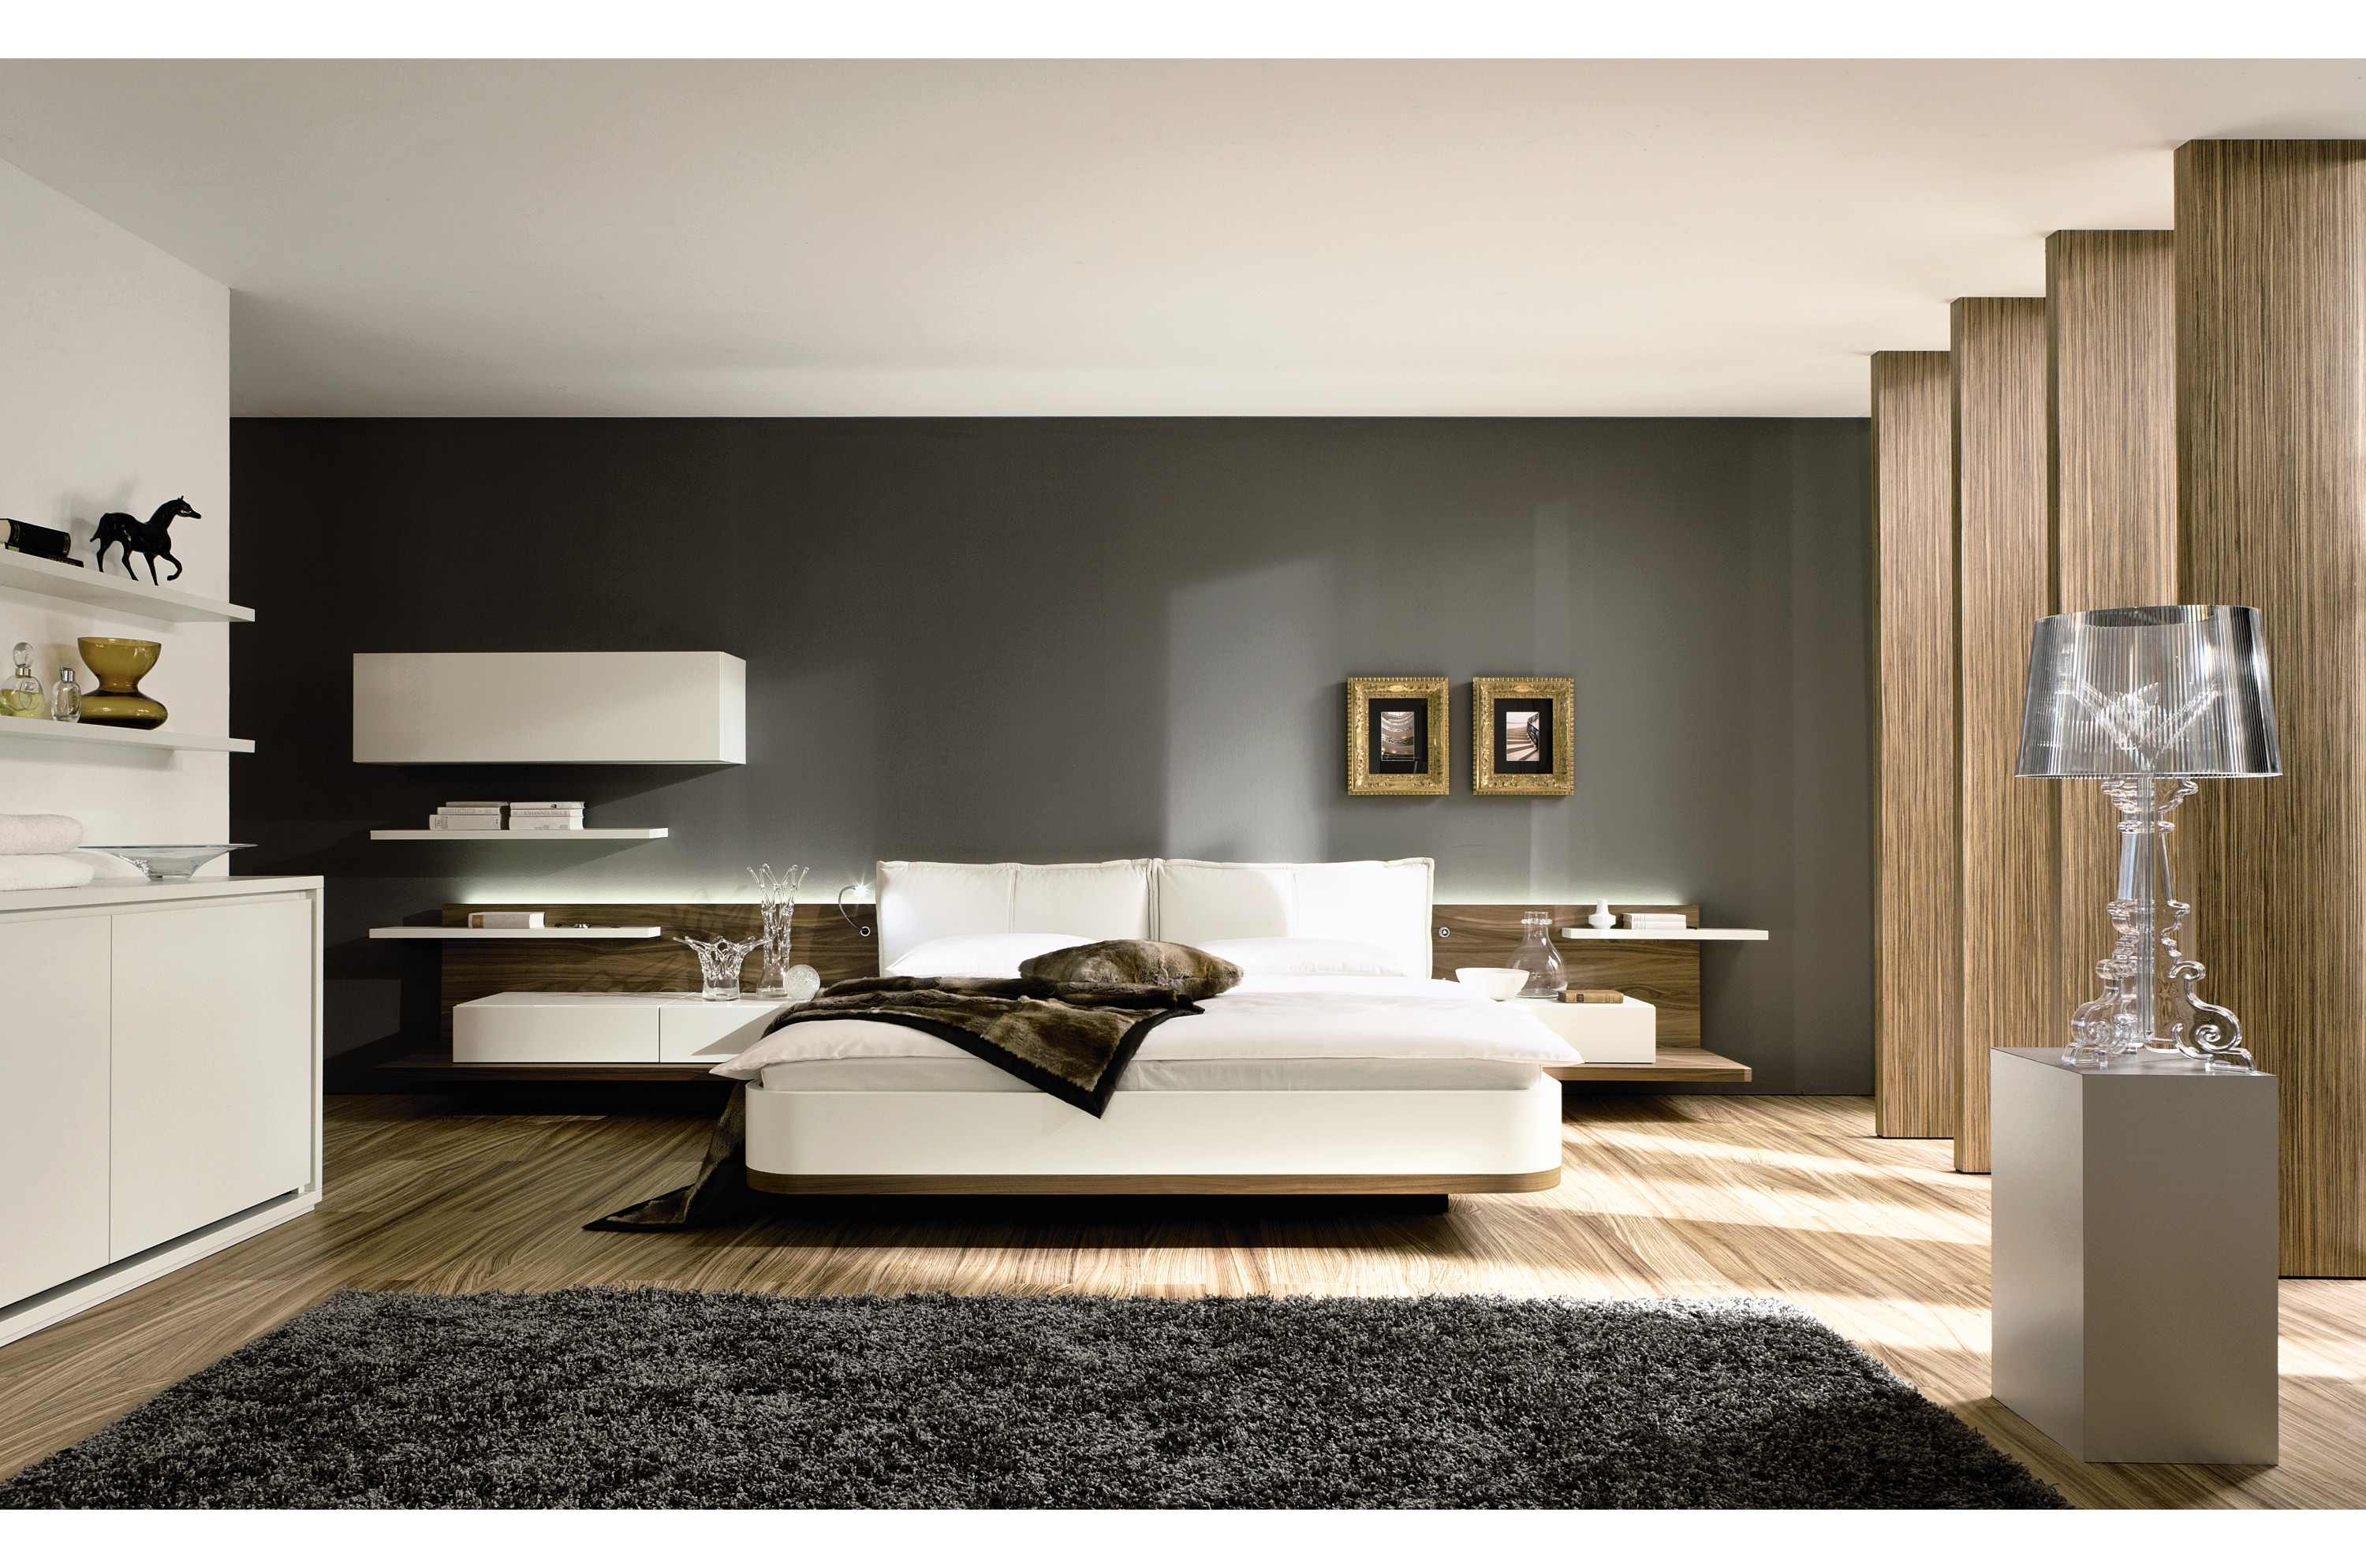 Modern bedroom innovation bedroom ideas interior design for Room designs bedroom